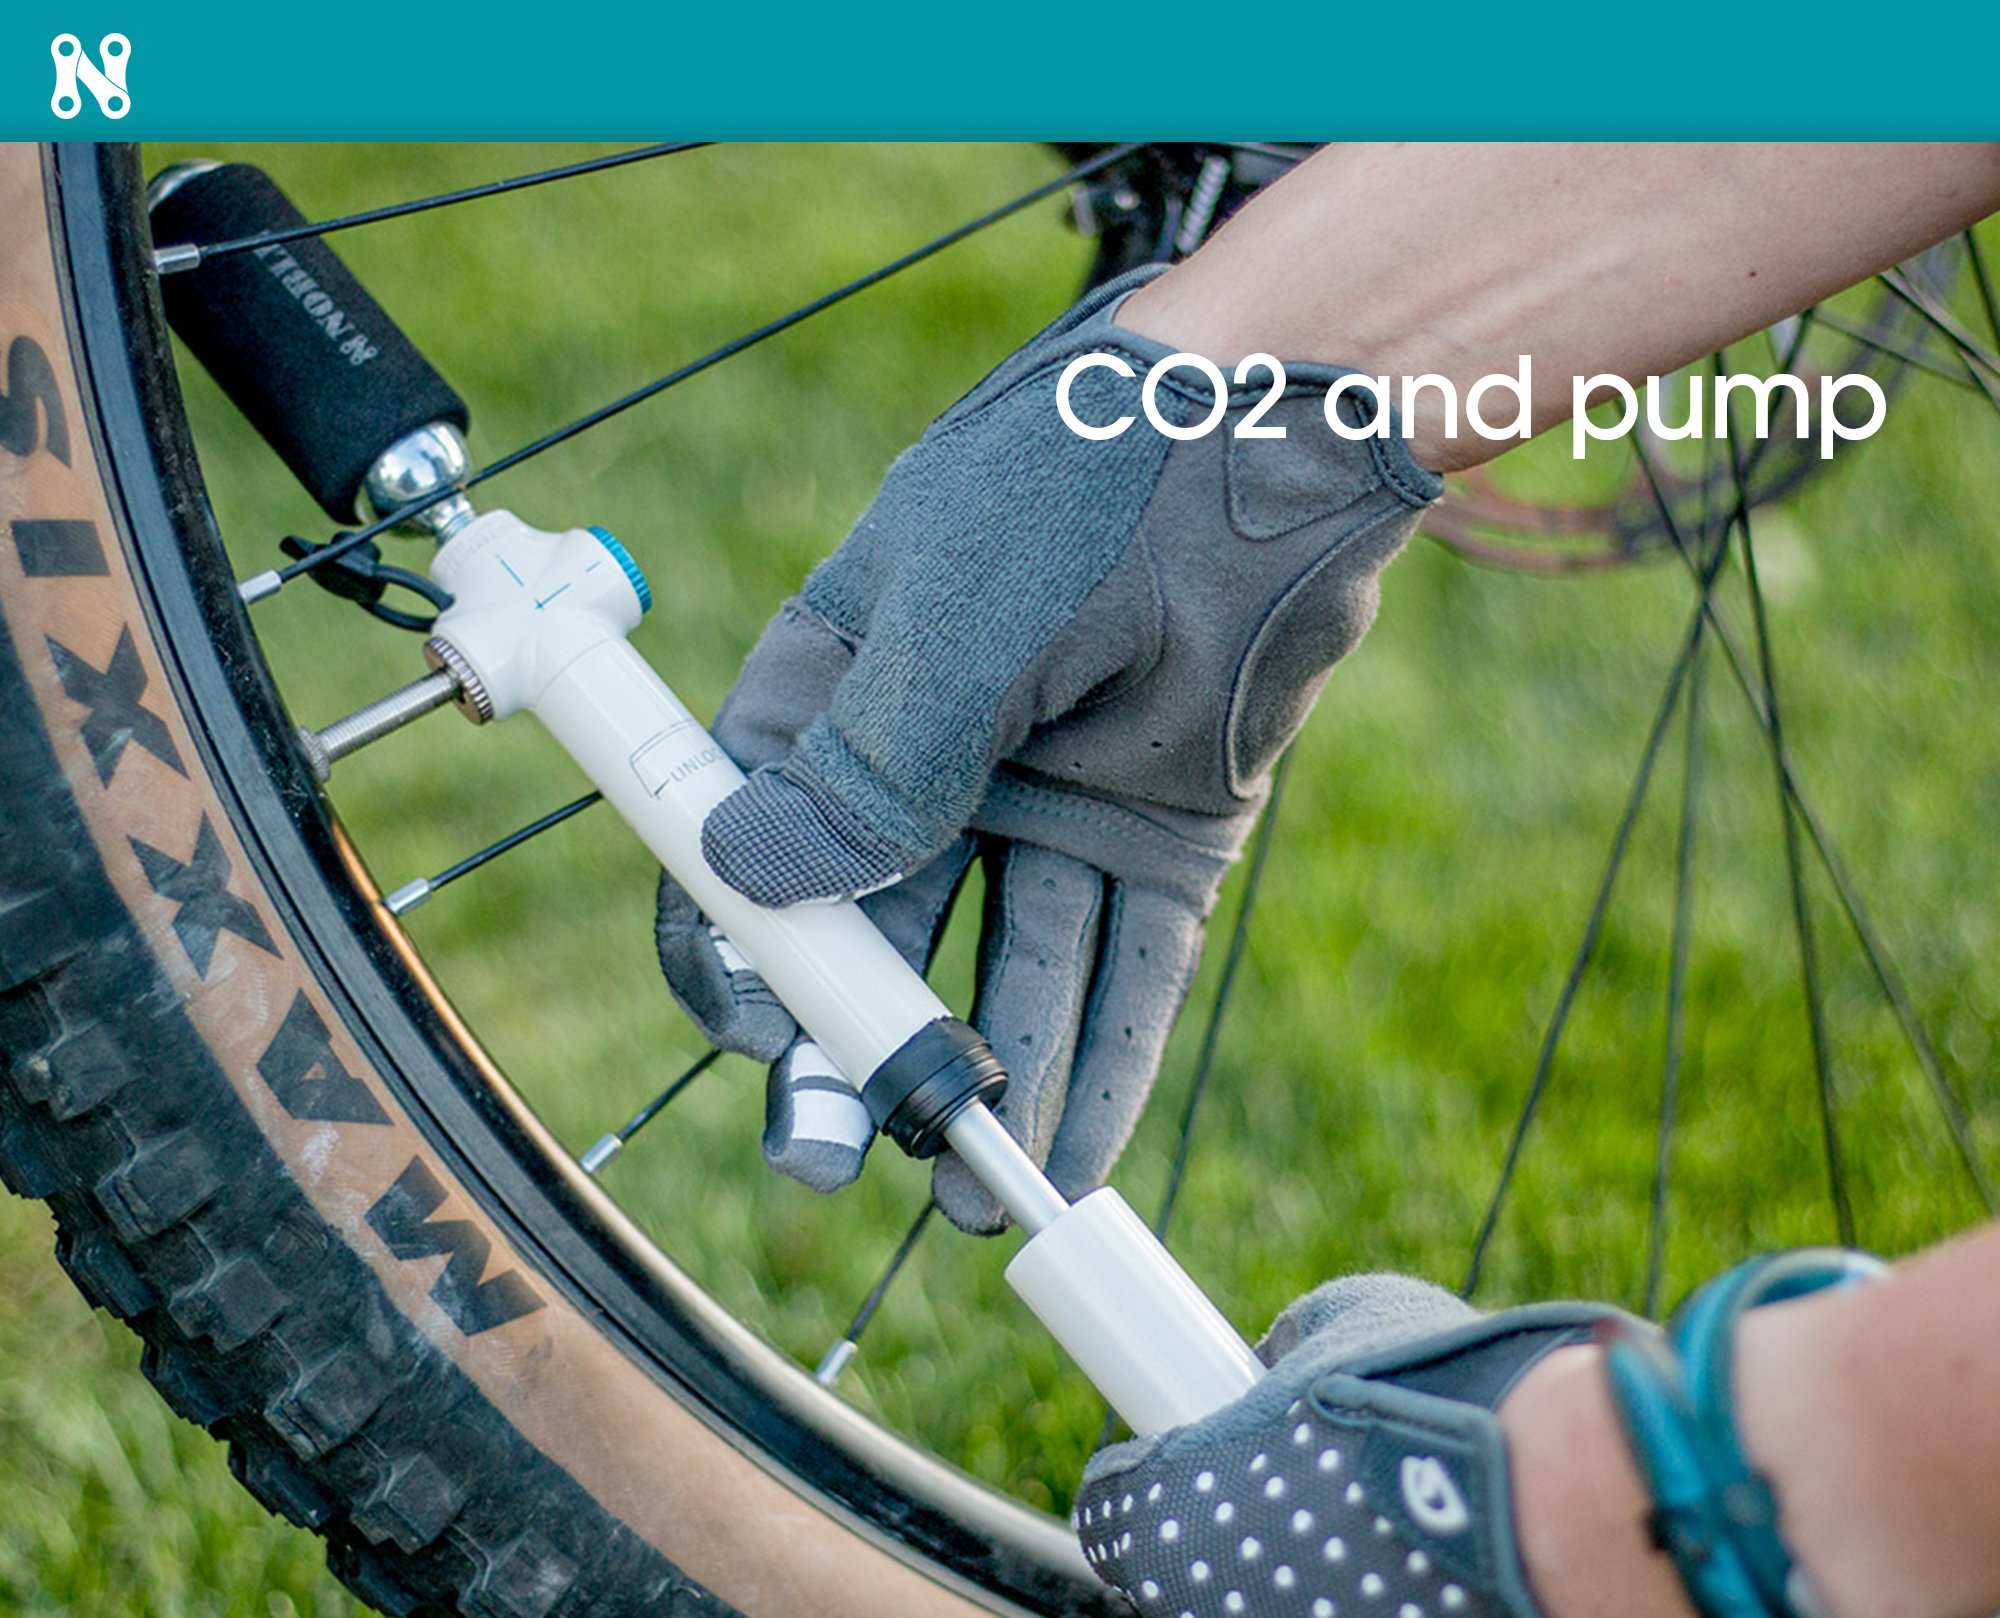 Portable Mini Air Inflator Pump with CO2 Pressure Valve for Bicycle Tire - Small Handheld Tool Fits both Dunlop and Presta Valves - Perfect Bike Accessory to Keep Tires Inflated and on the Road by Noble Cycling (Image #4)